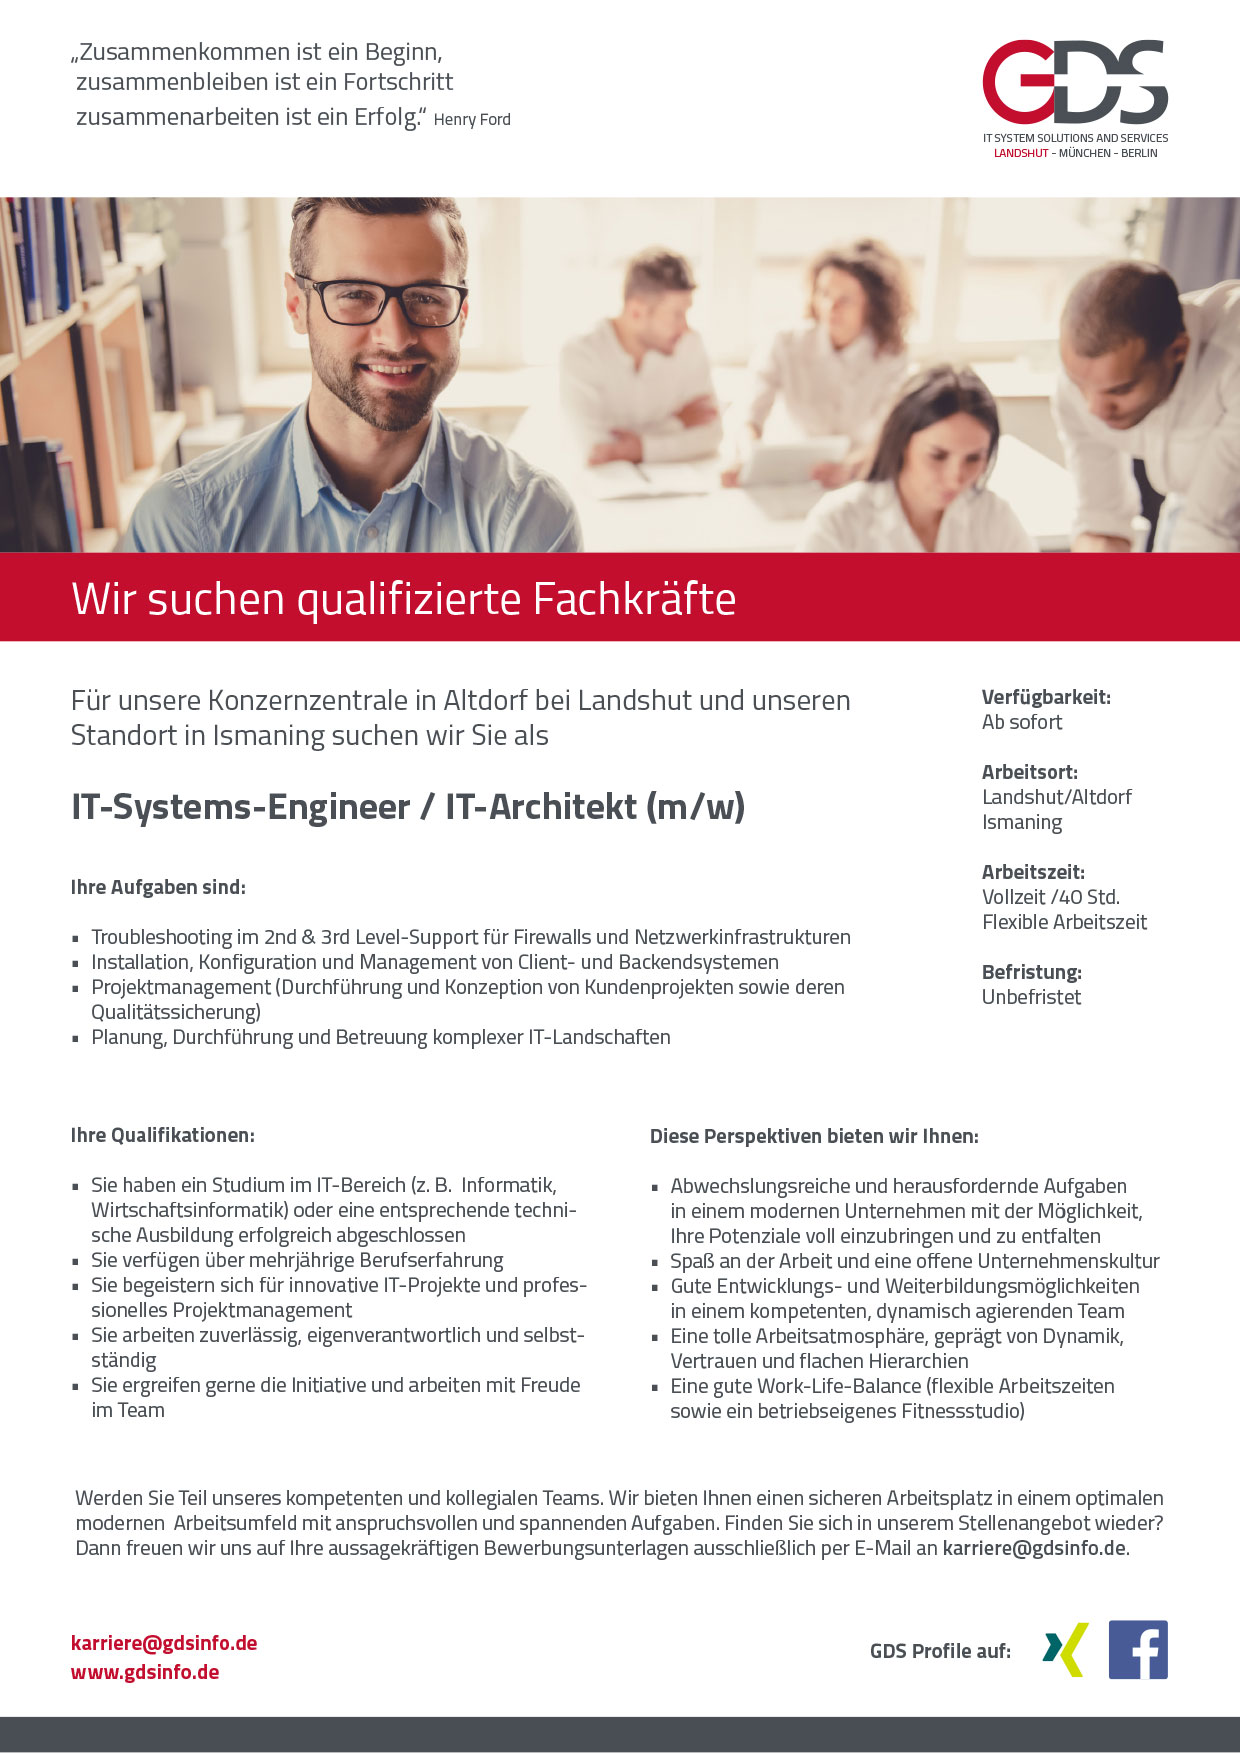 IT-Systems-Engineer / IT-Architekt (m/w)